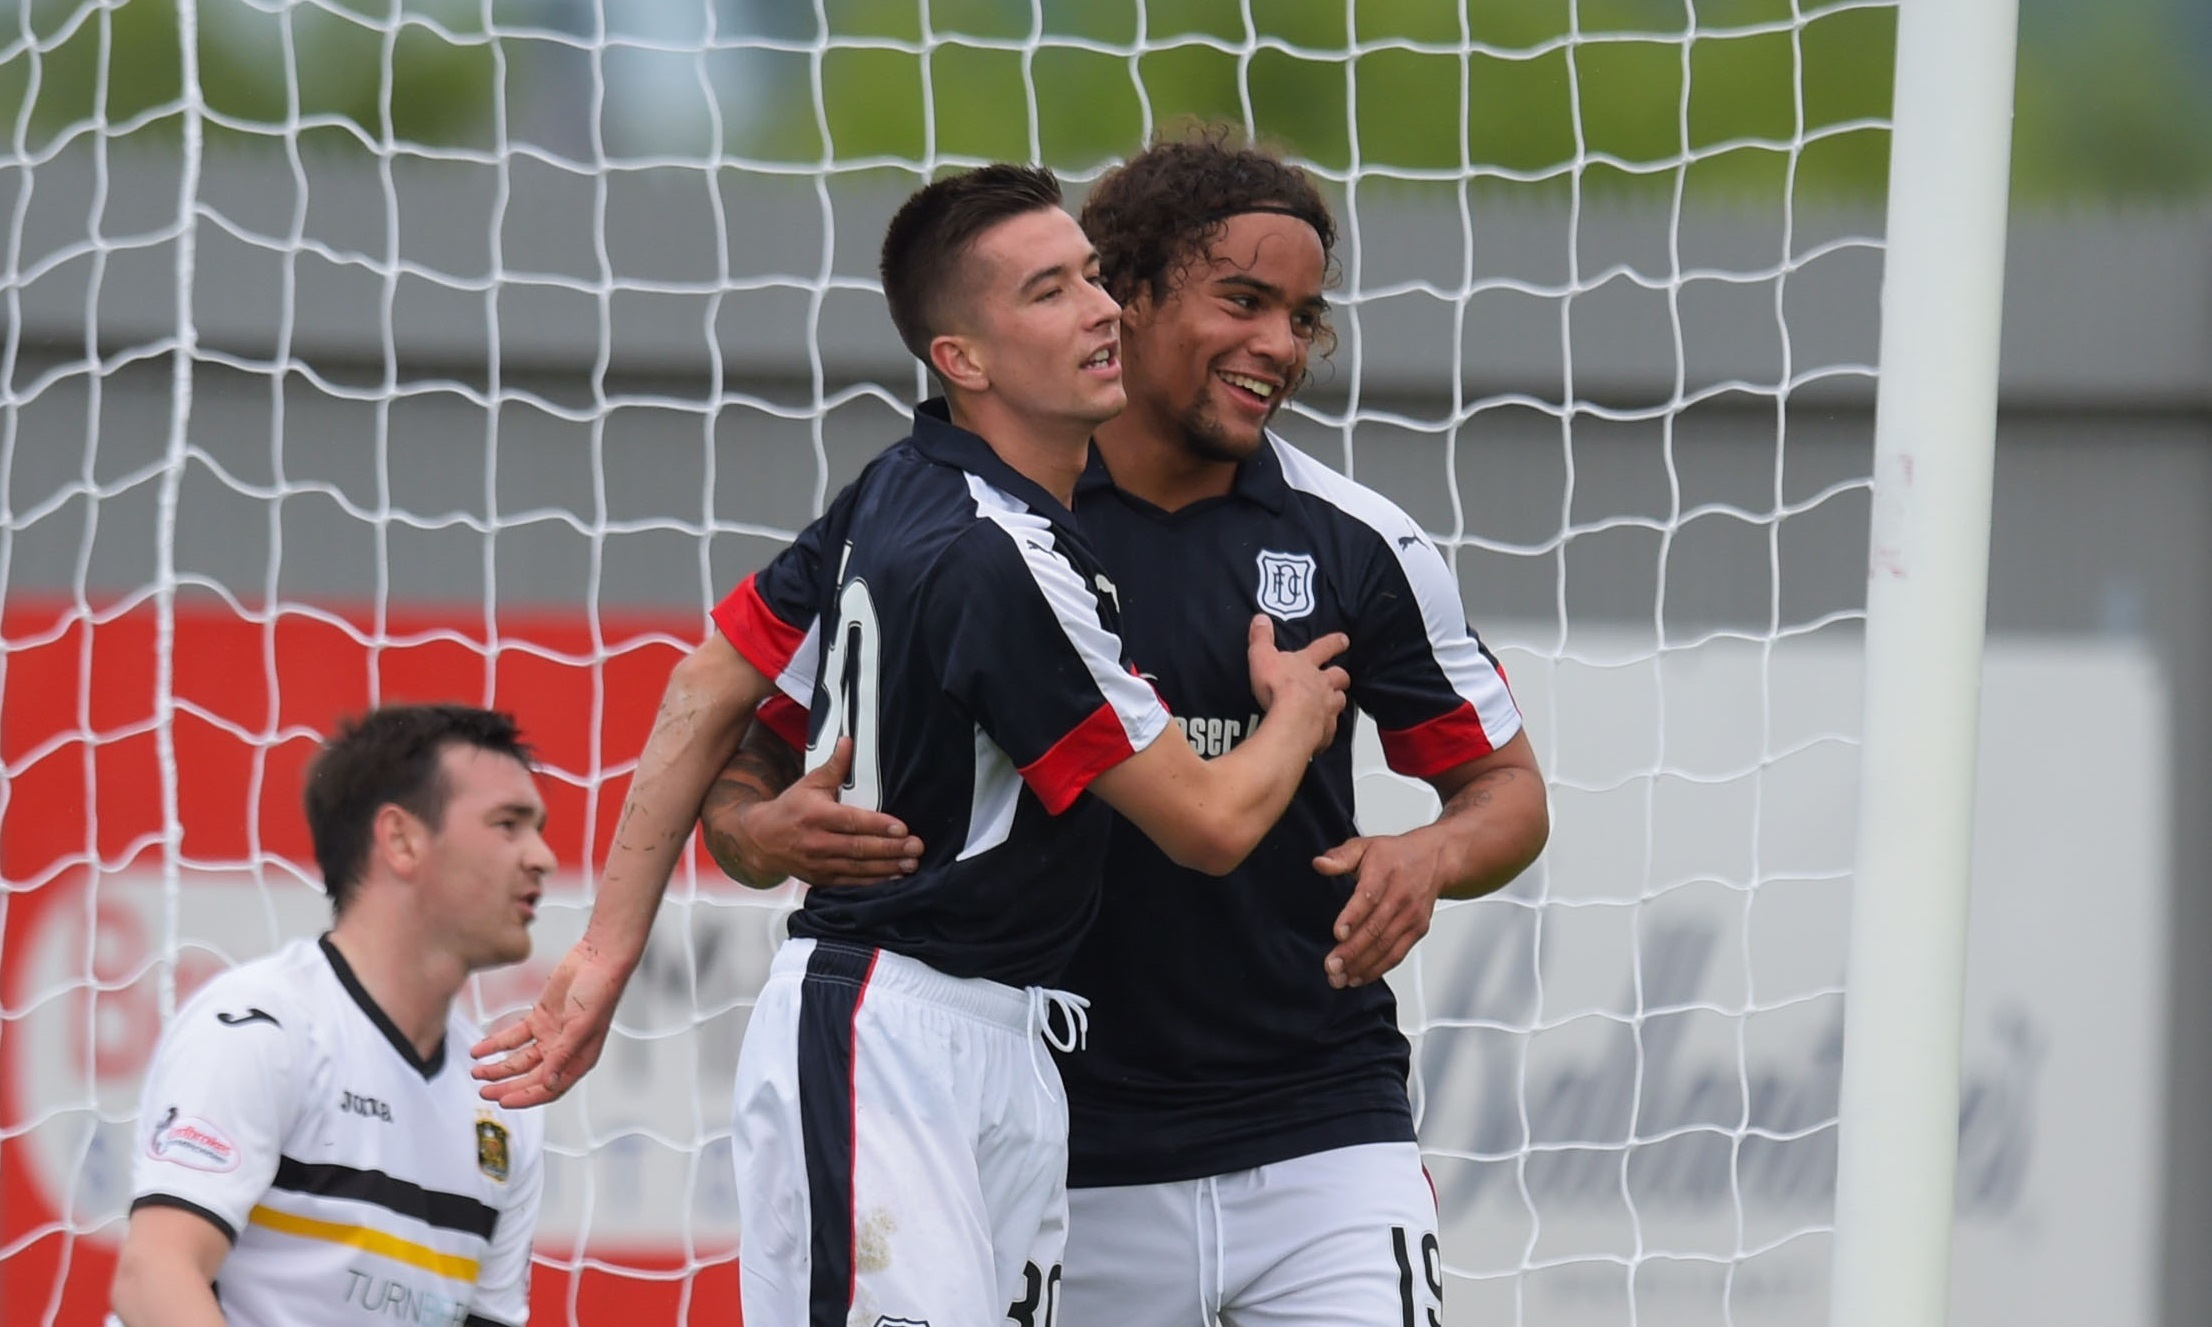 Cammy Kerr is congratulated by Yordi Teijsse after he scoring the opener